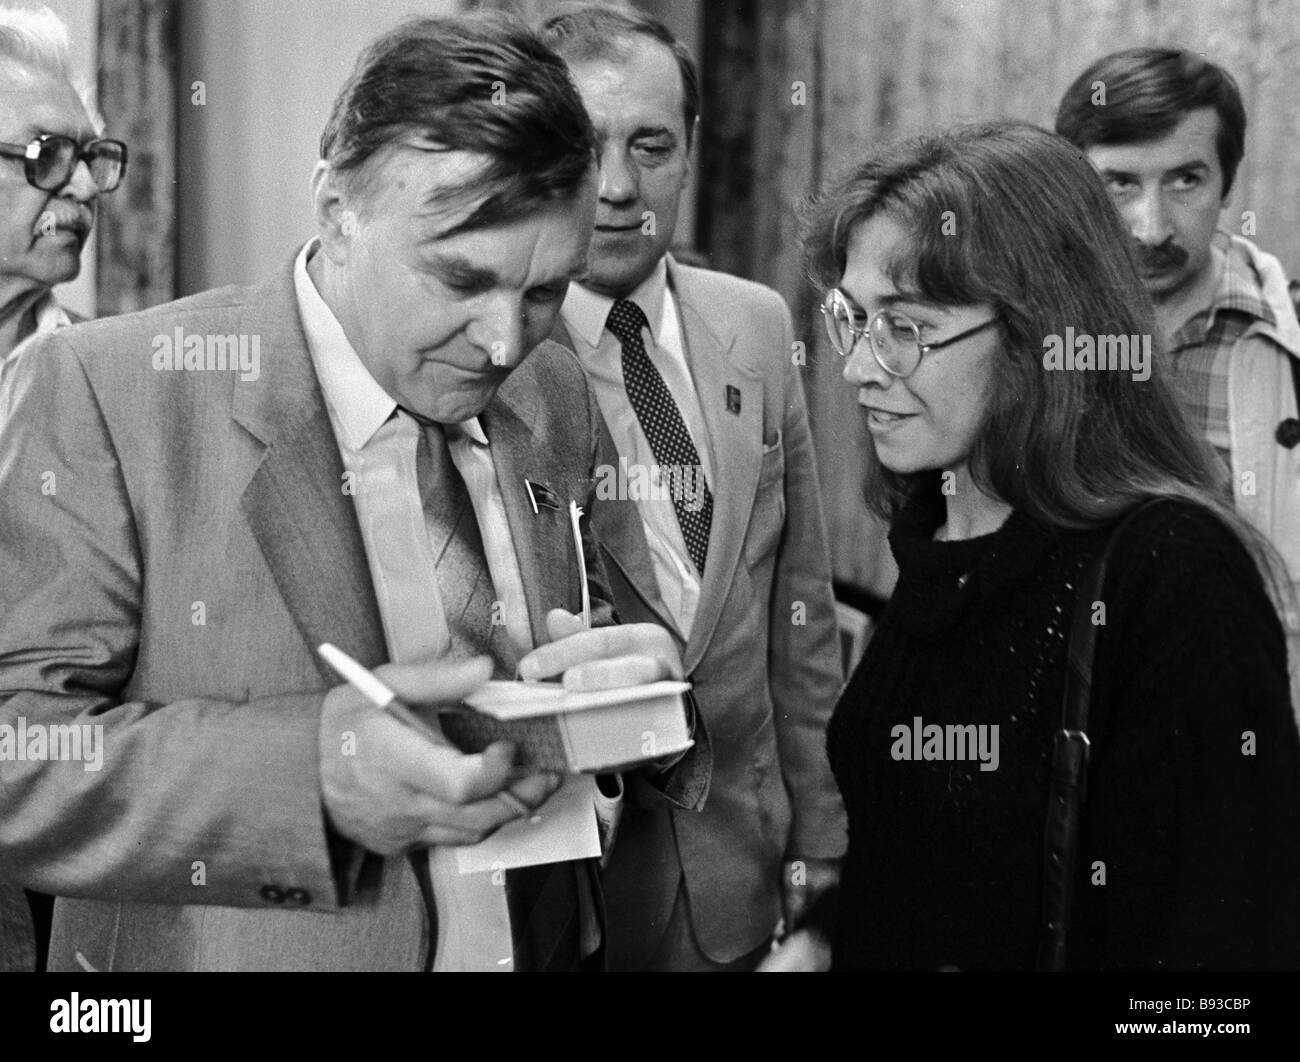 Yury Bondarev a prominent Soviet writer attending a festival of Slavic writing and culture - Stock Image